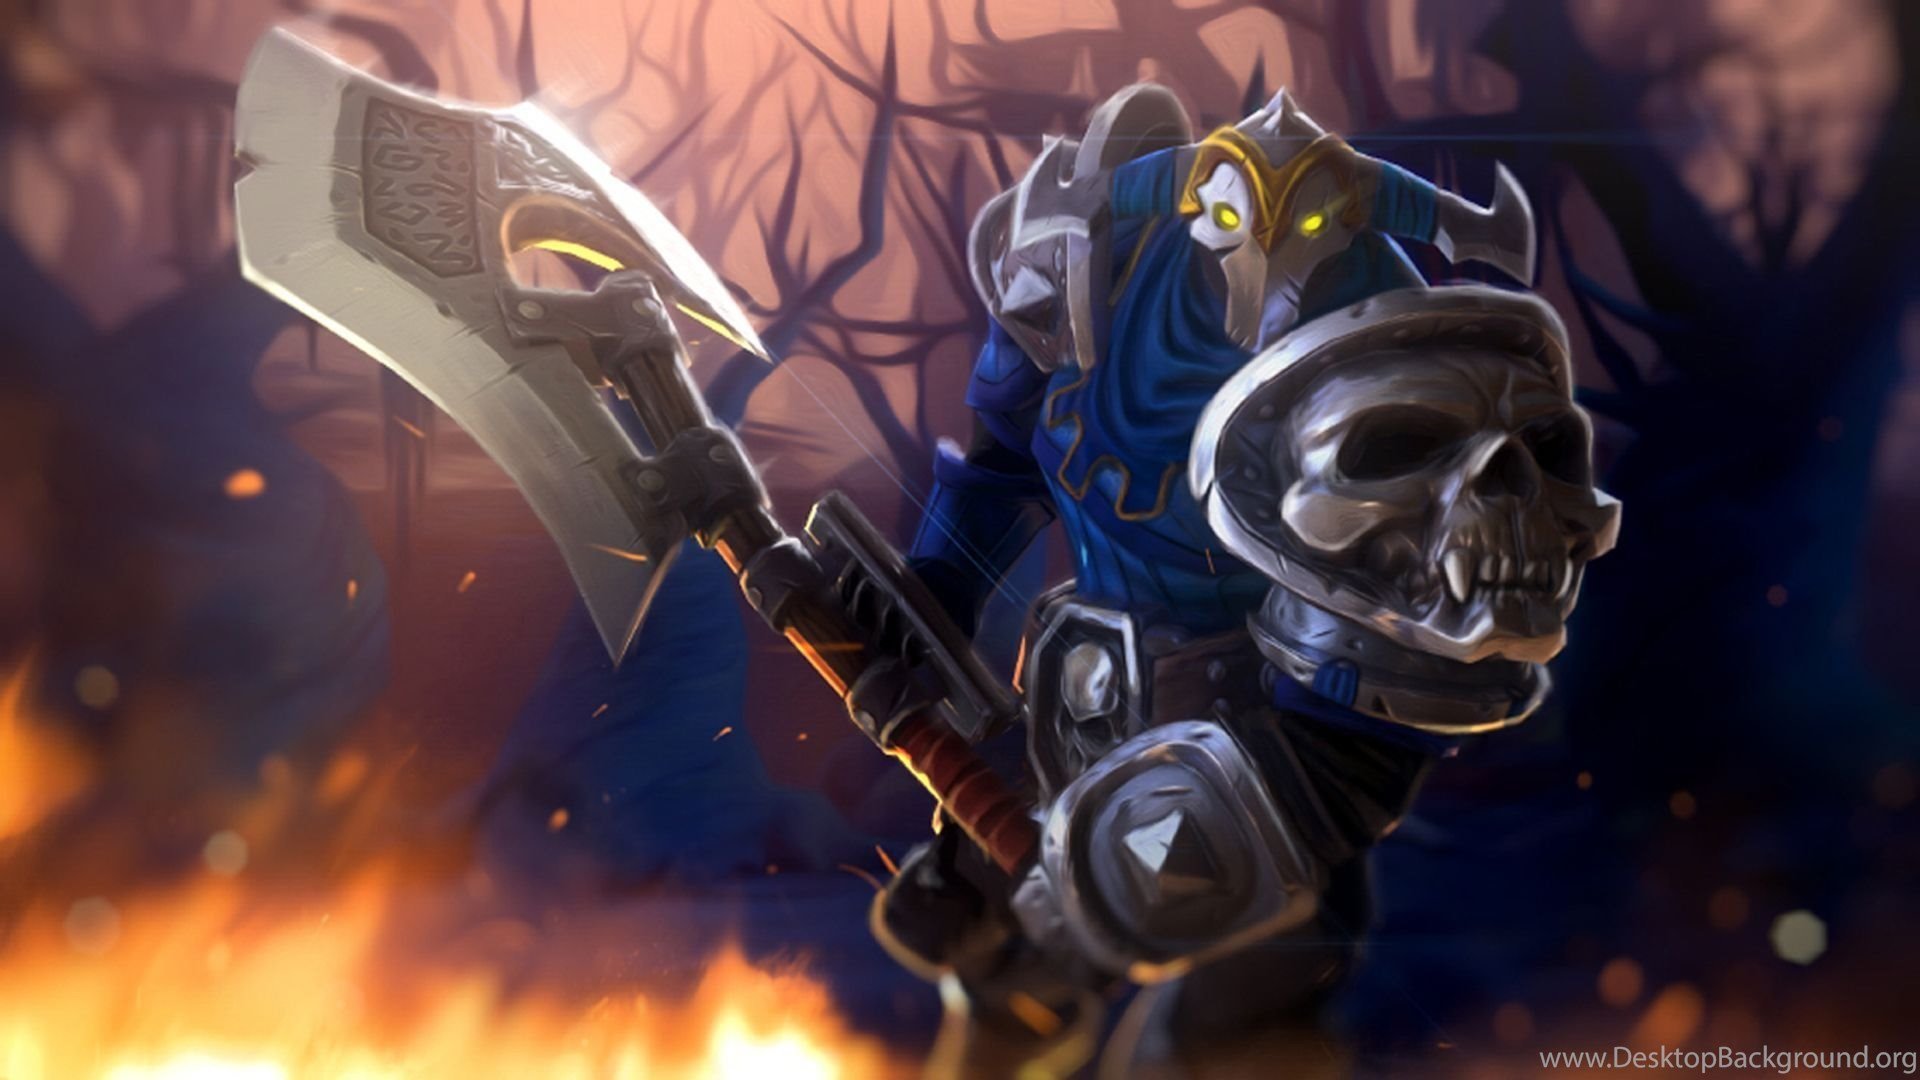 Sven Dota Set 2016 Defense Of The Ancients Games Desktop Background